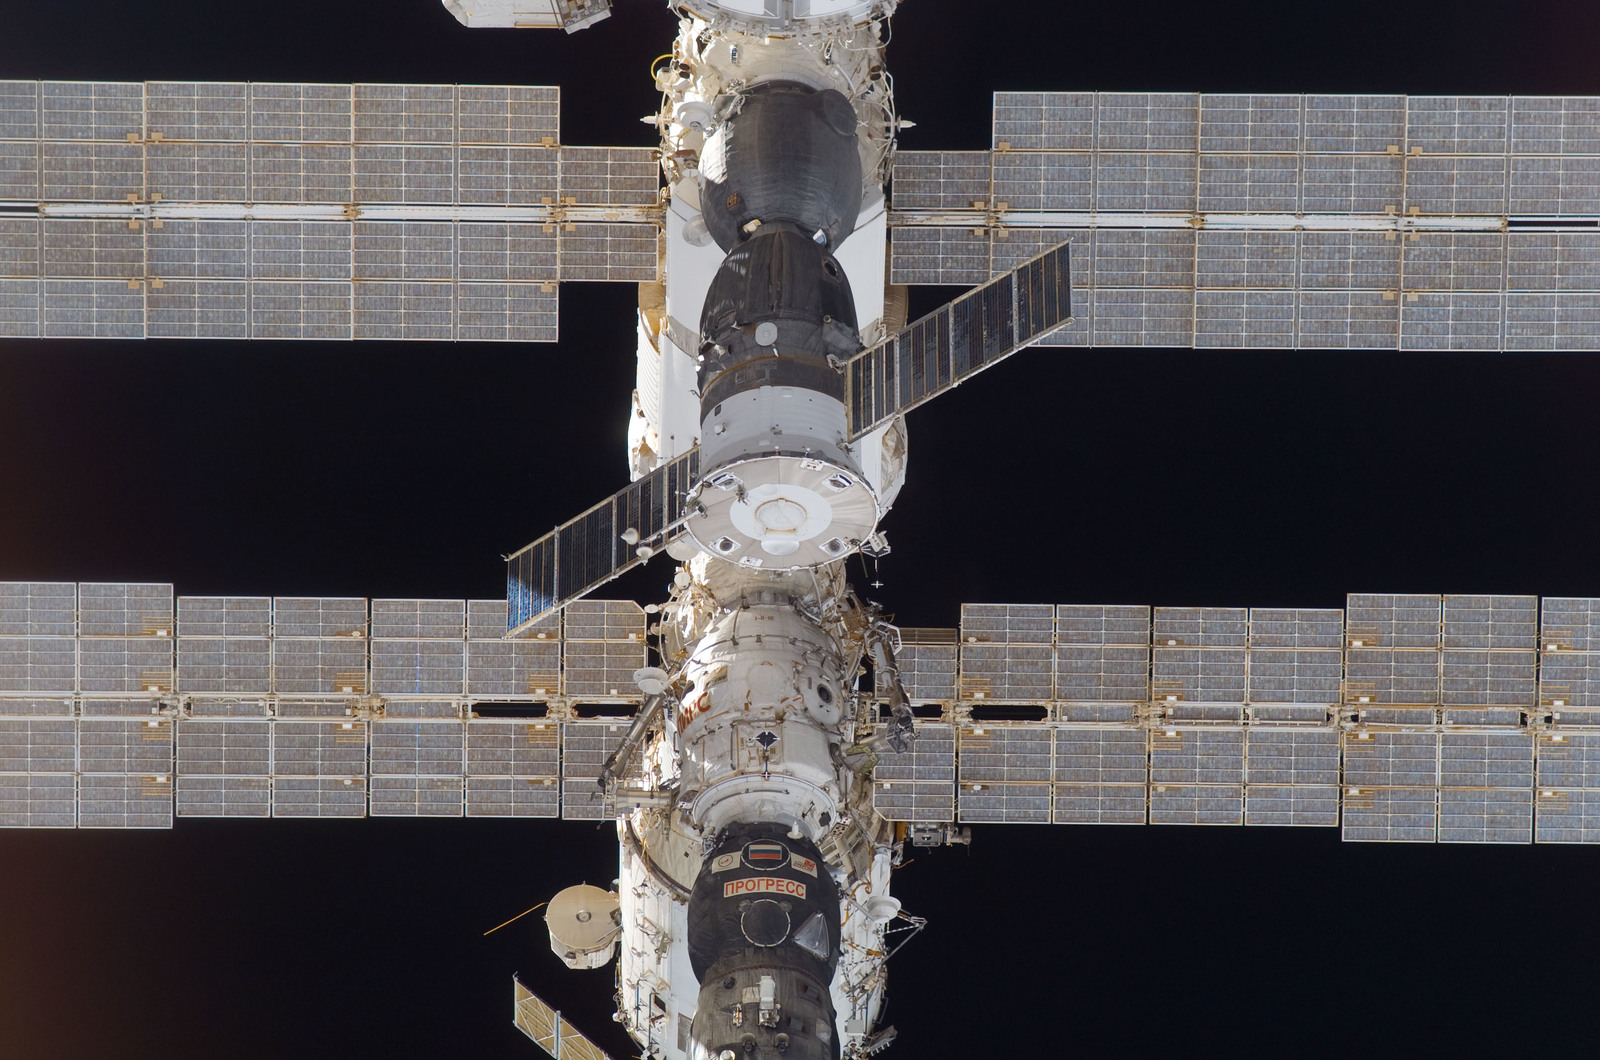 S115E05409 - STS-115 - ISS during approach of the STS-115 Space Shuttle Atlantis